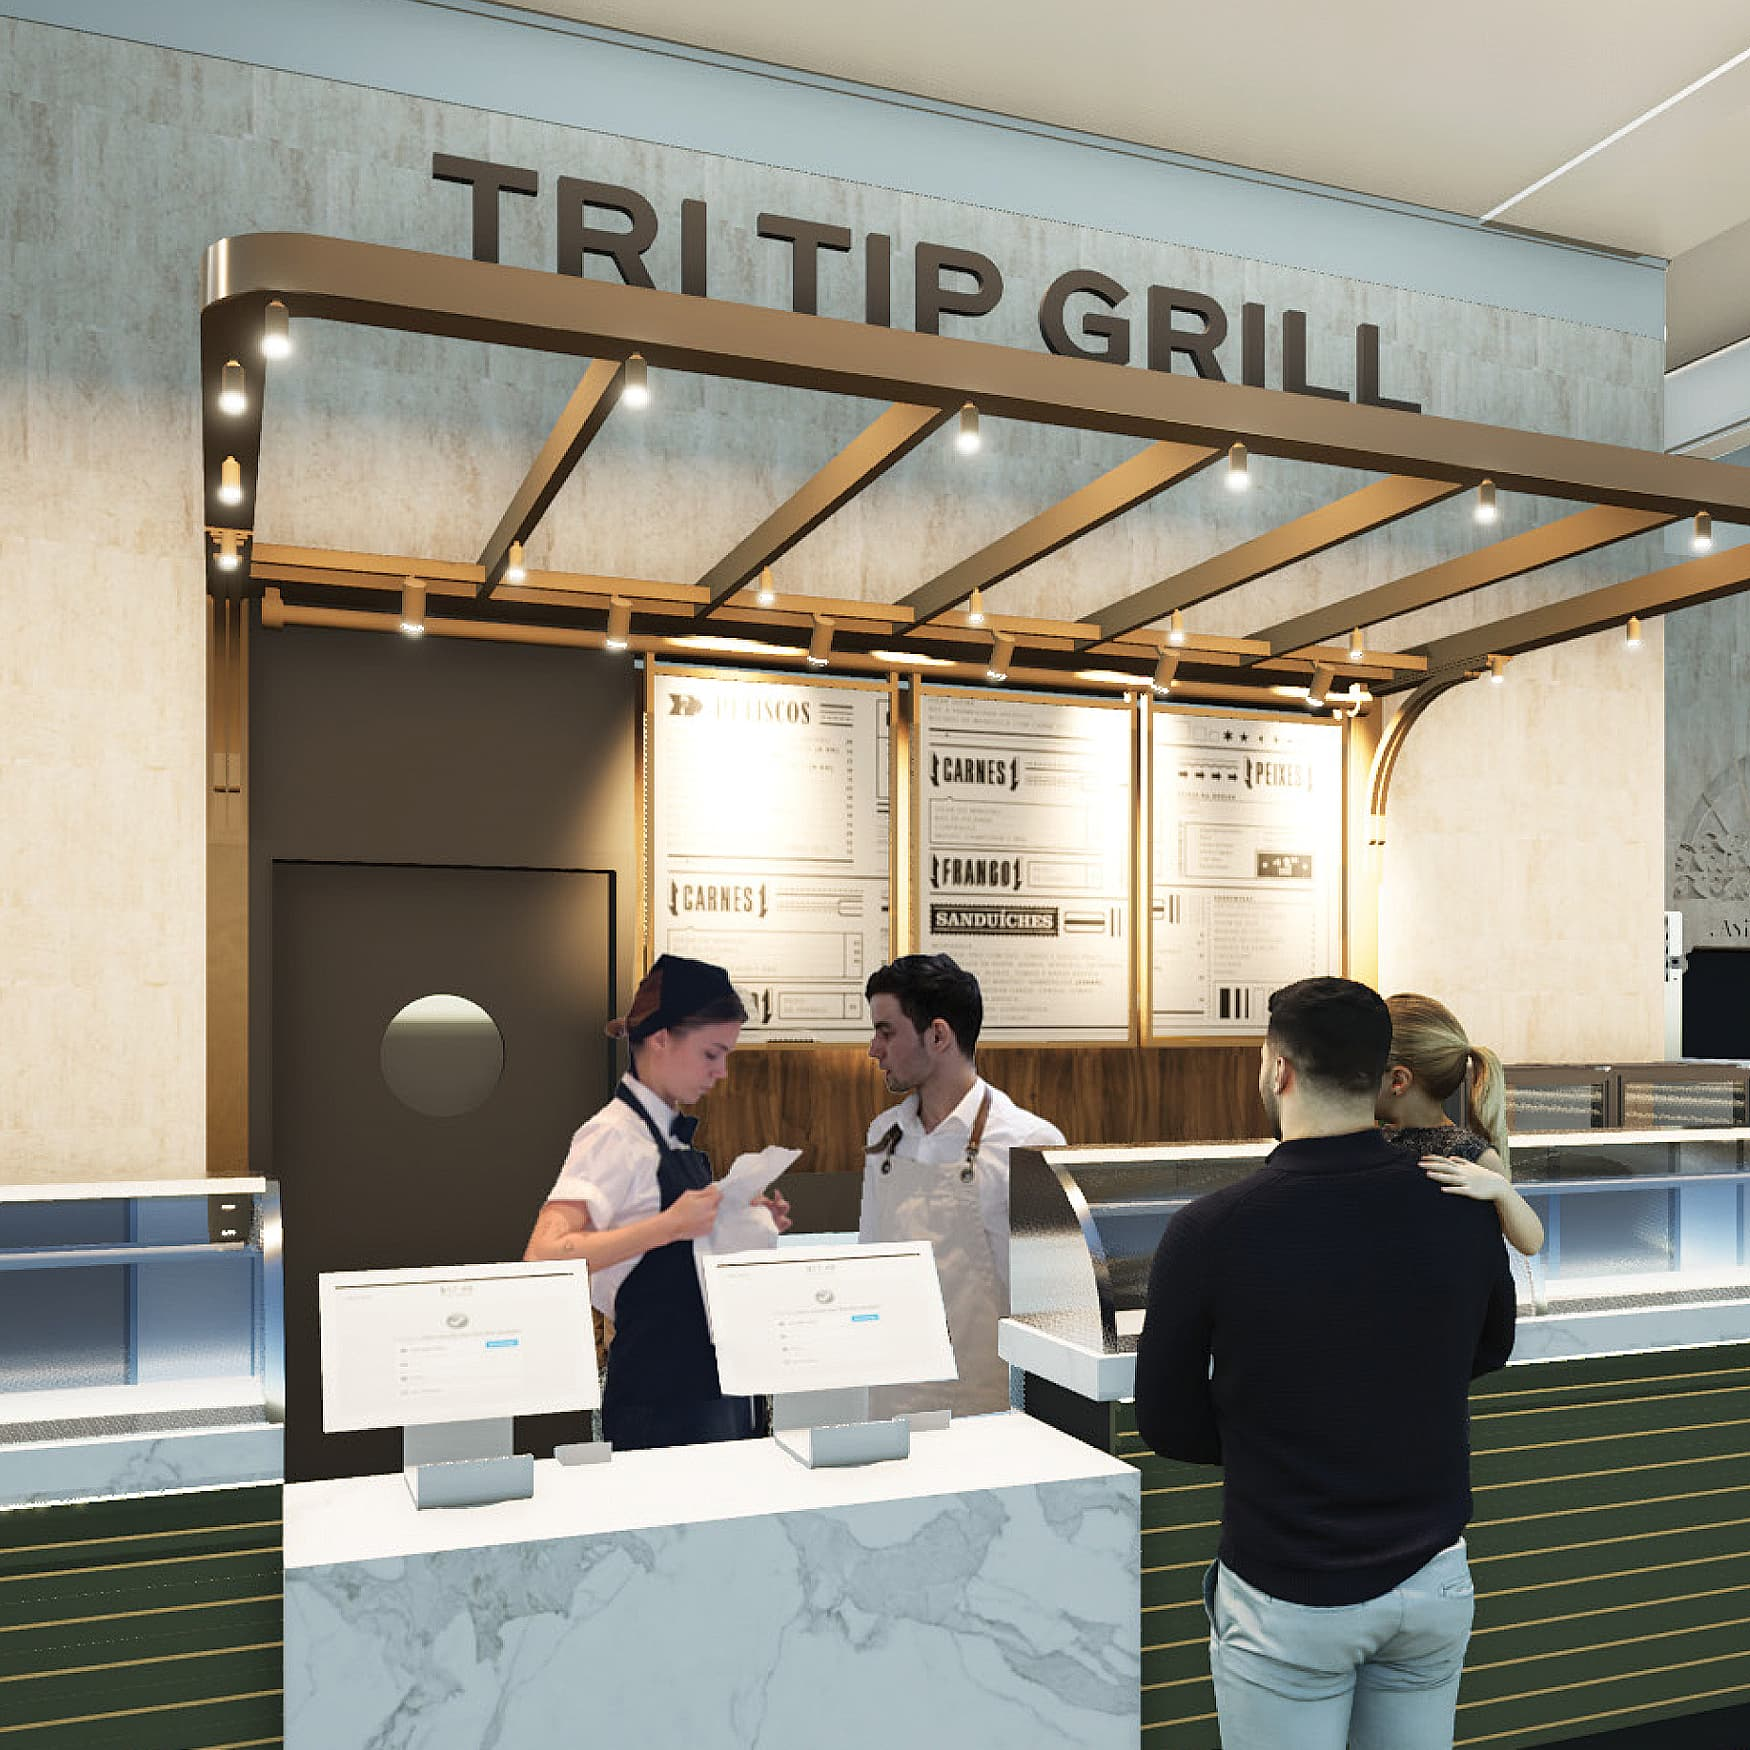 Design rendering for a food kiosk at Grand Central Terminal in New York City